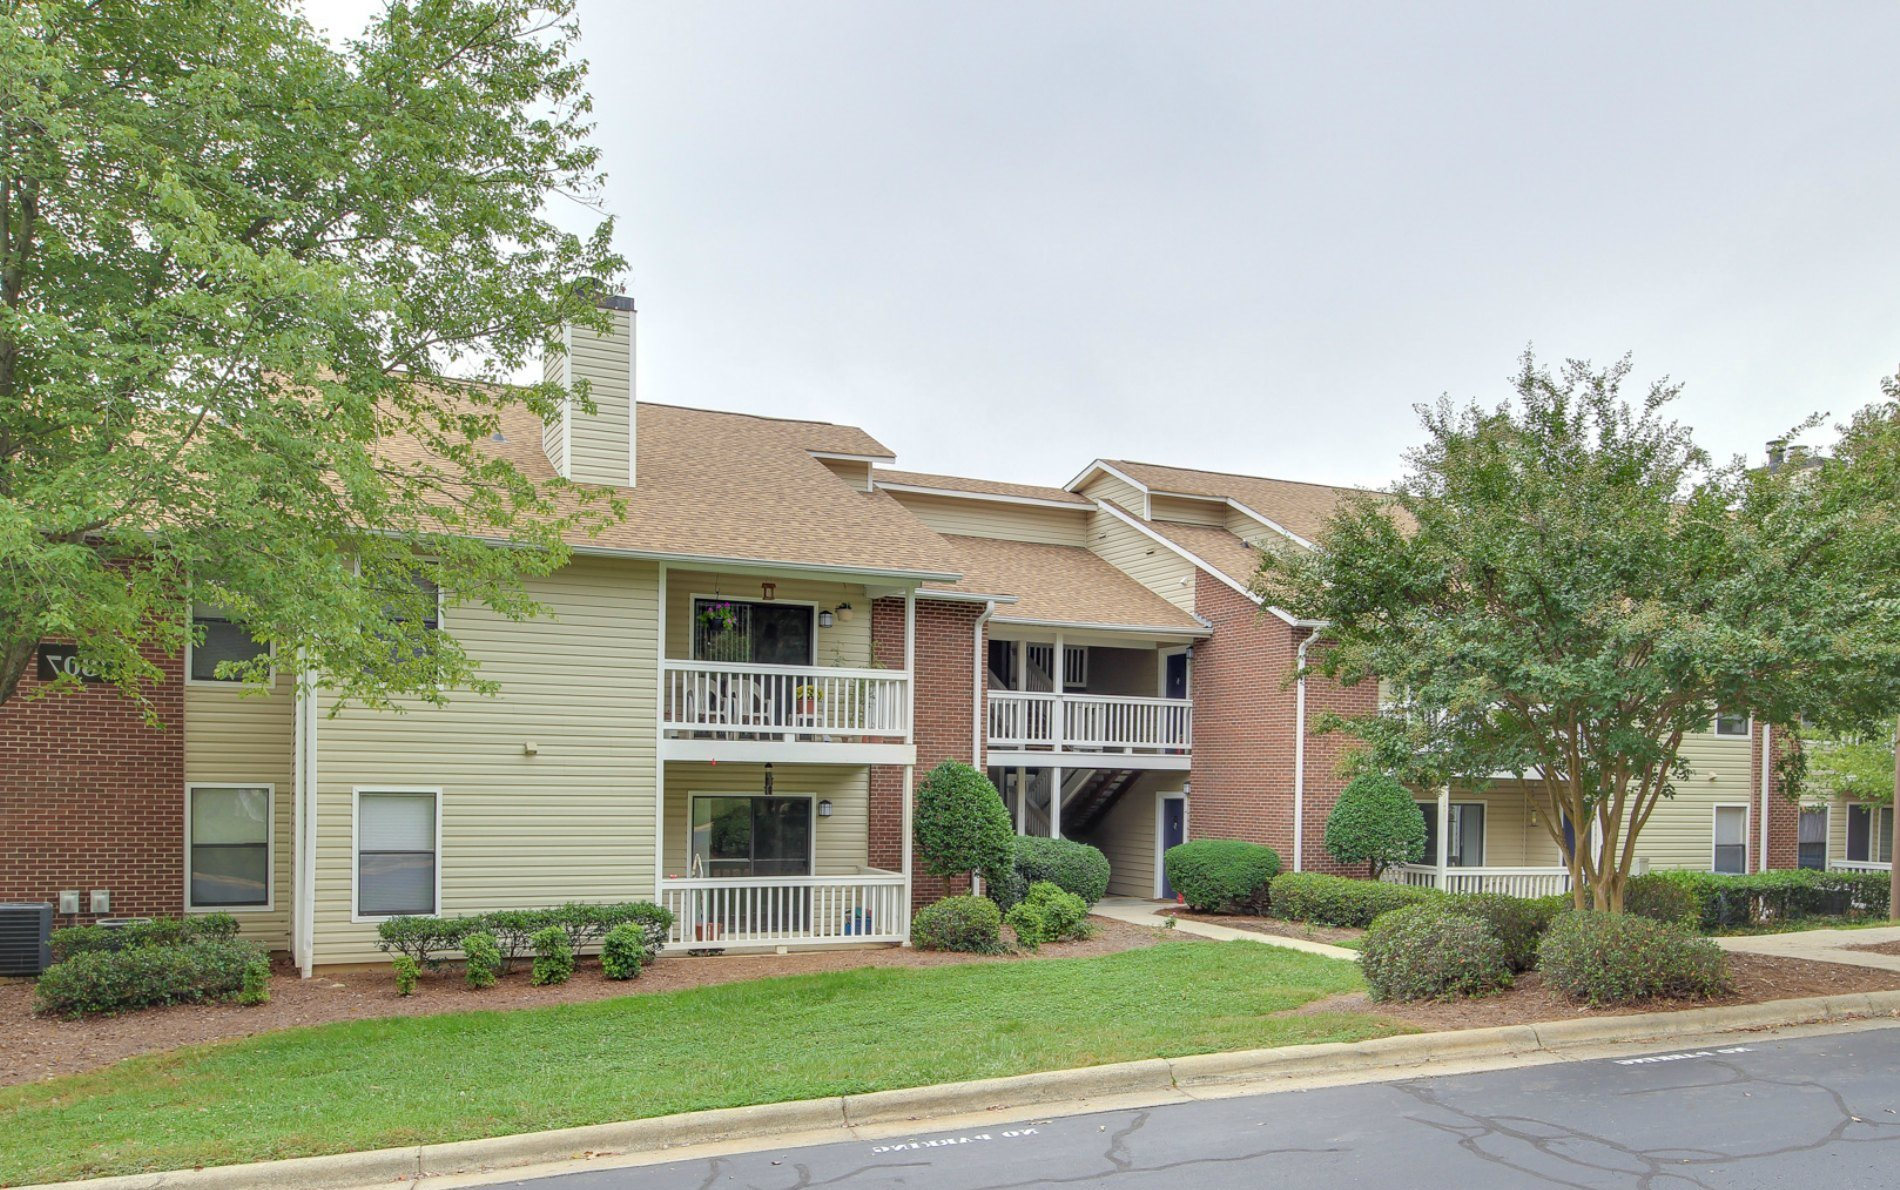 Terrace oaks apartments in greensboro nc for Terrace in apartment